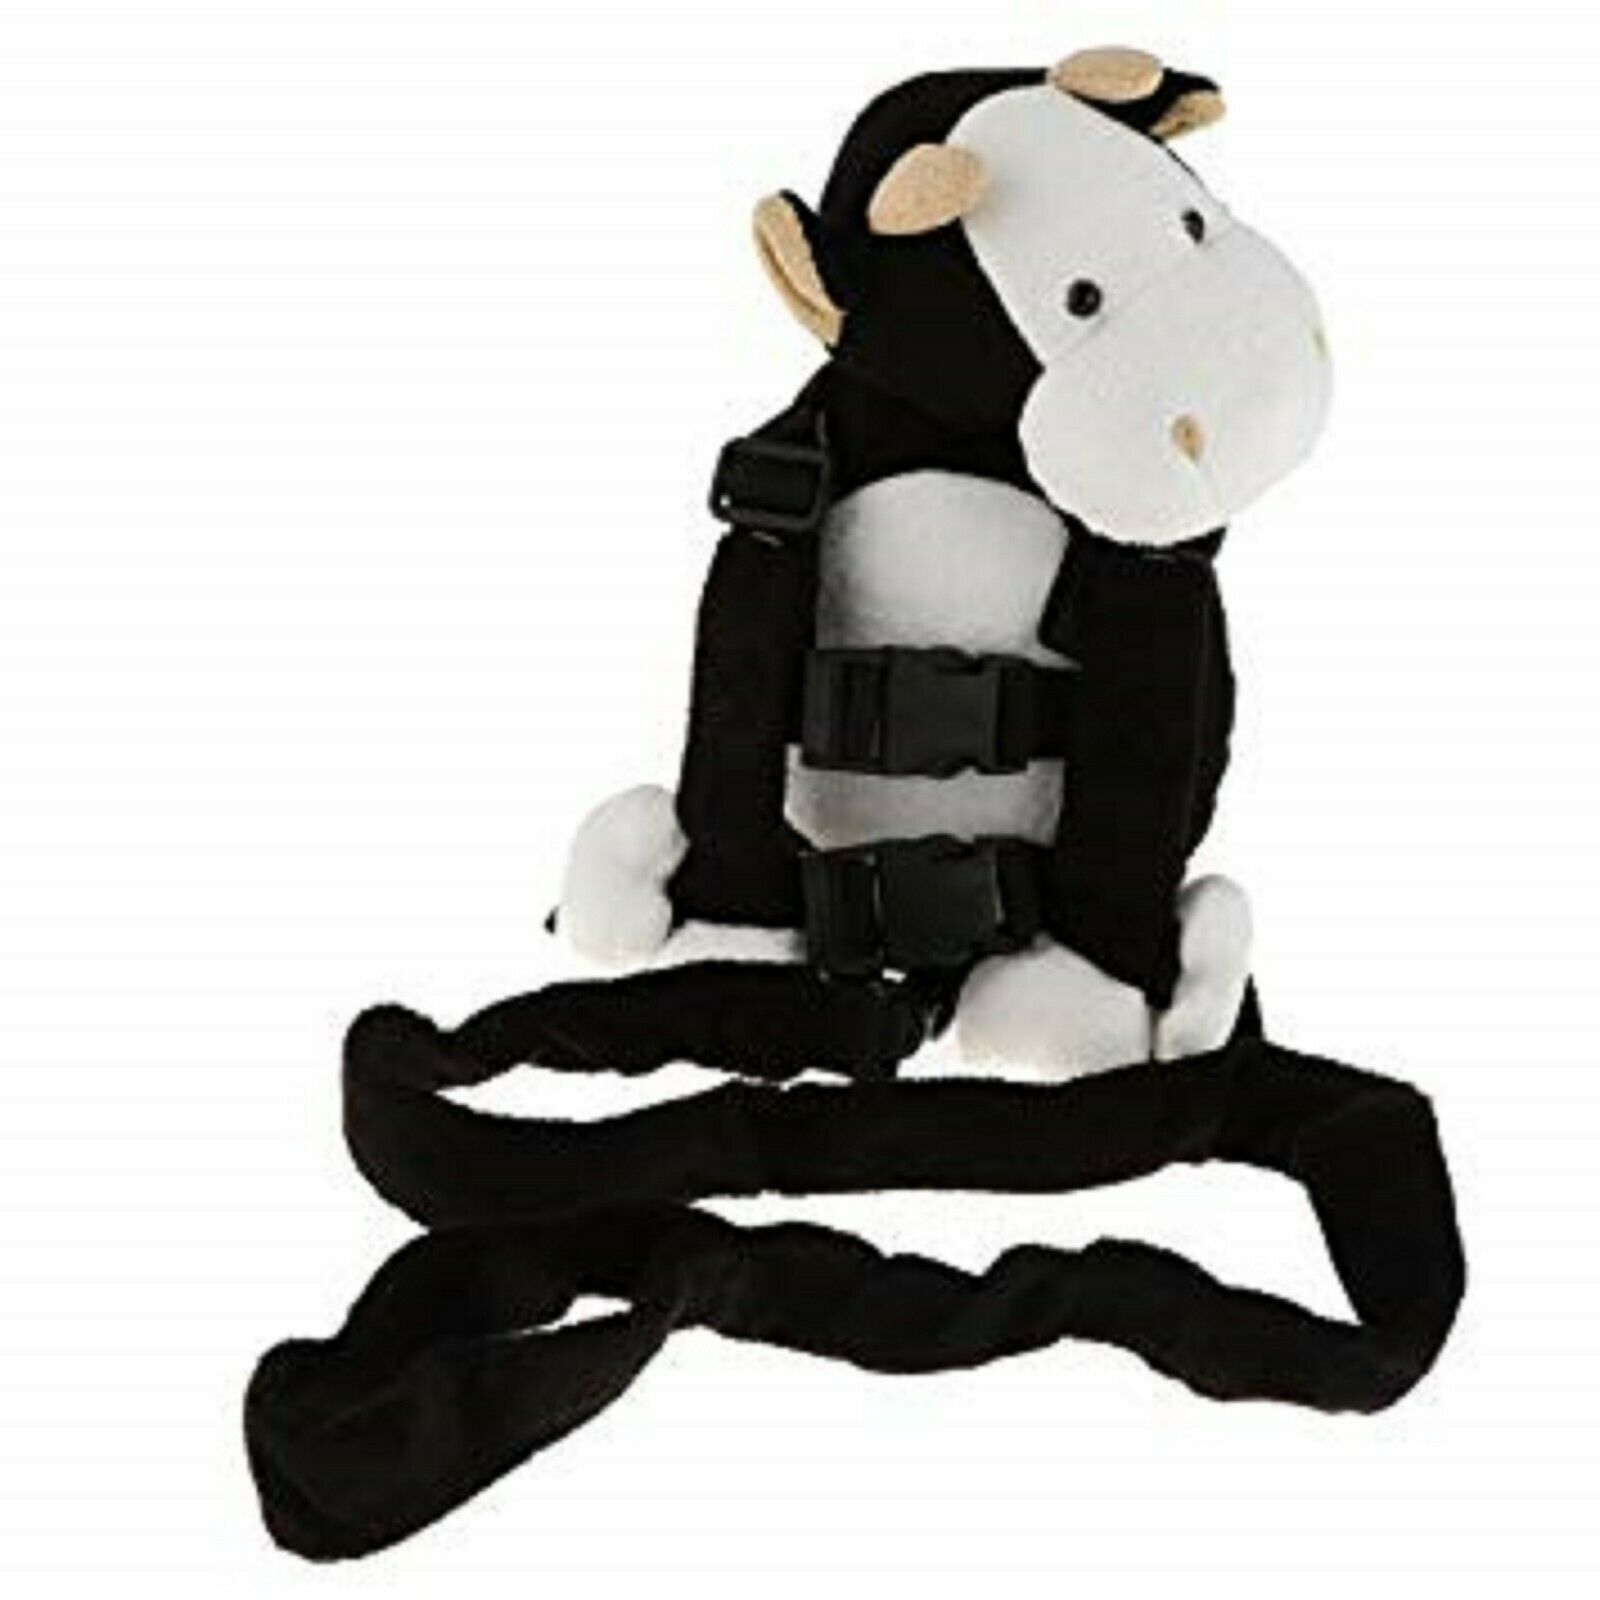 New baby//toddler walking safety harness soft Black